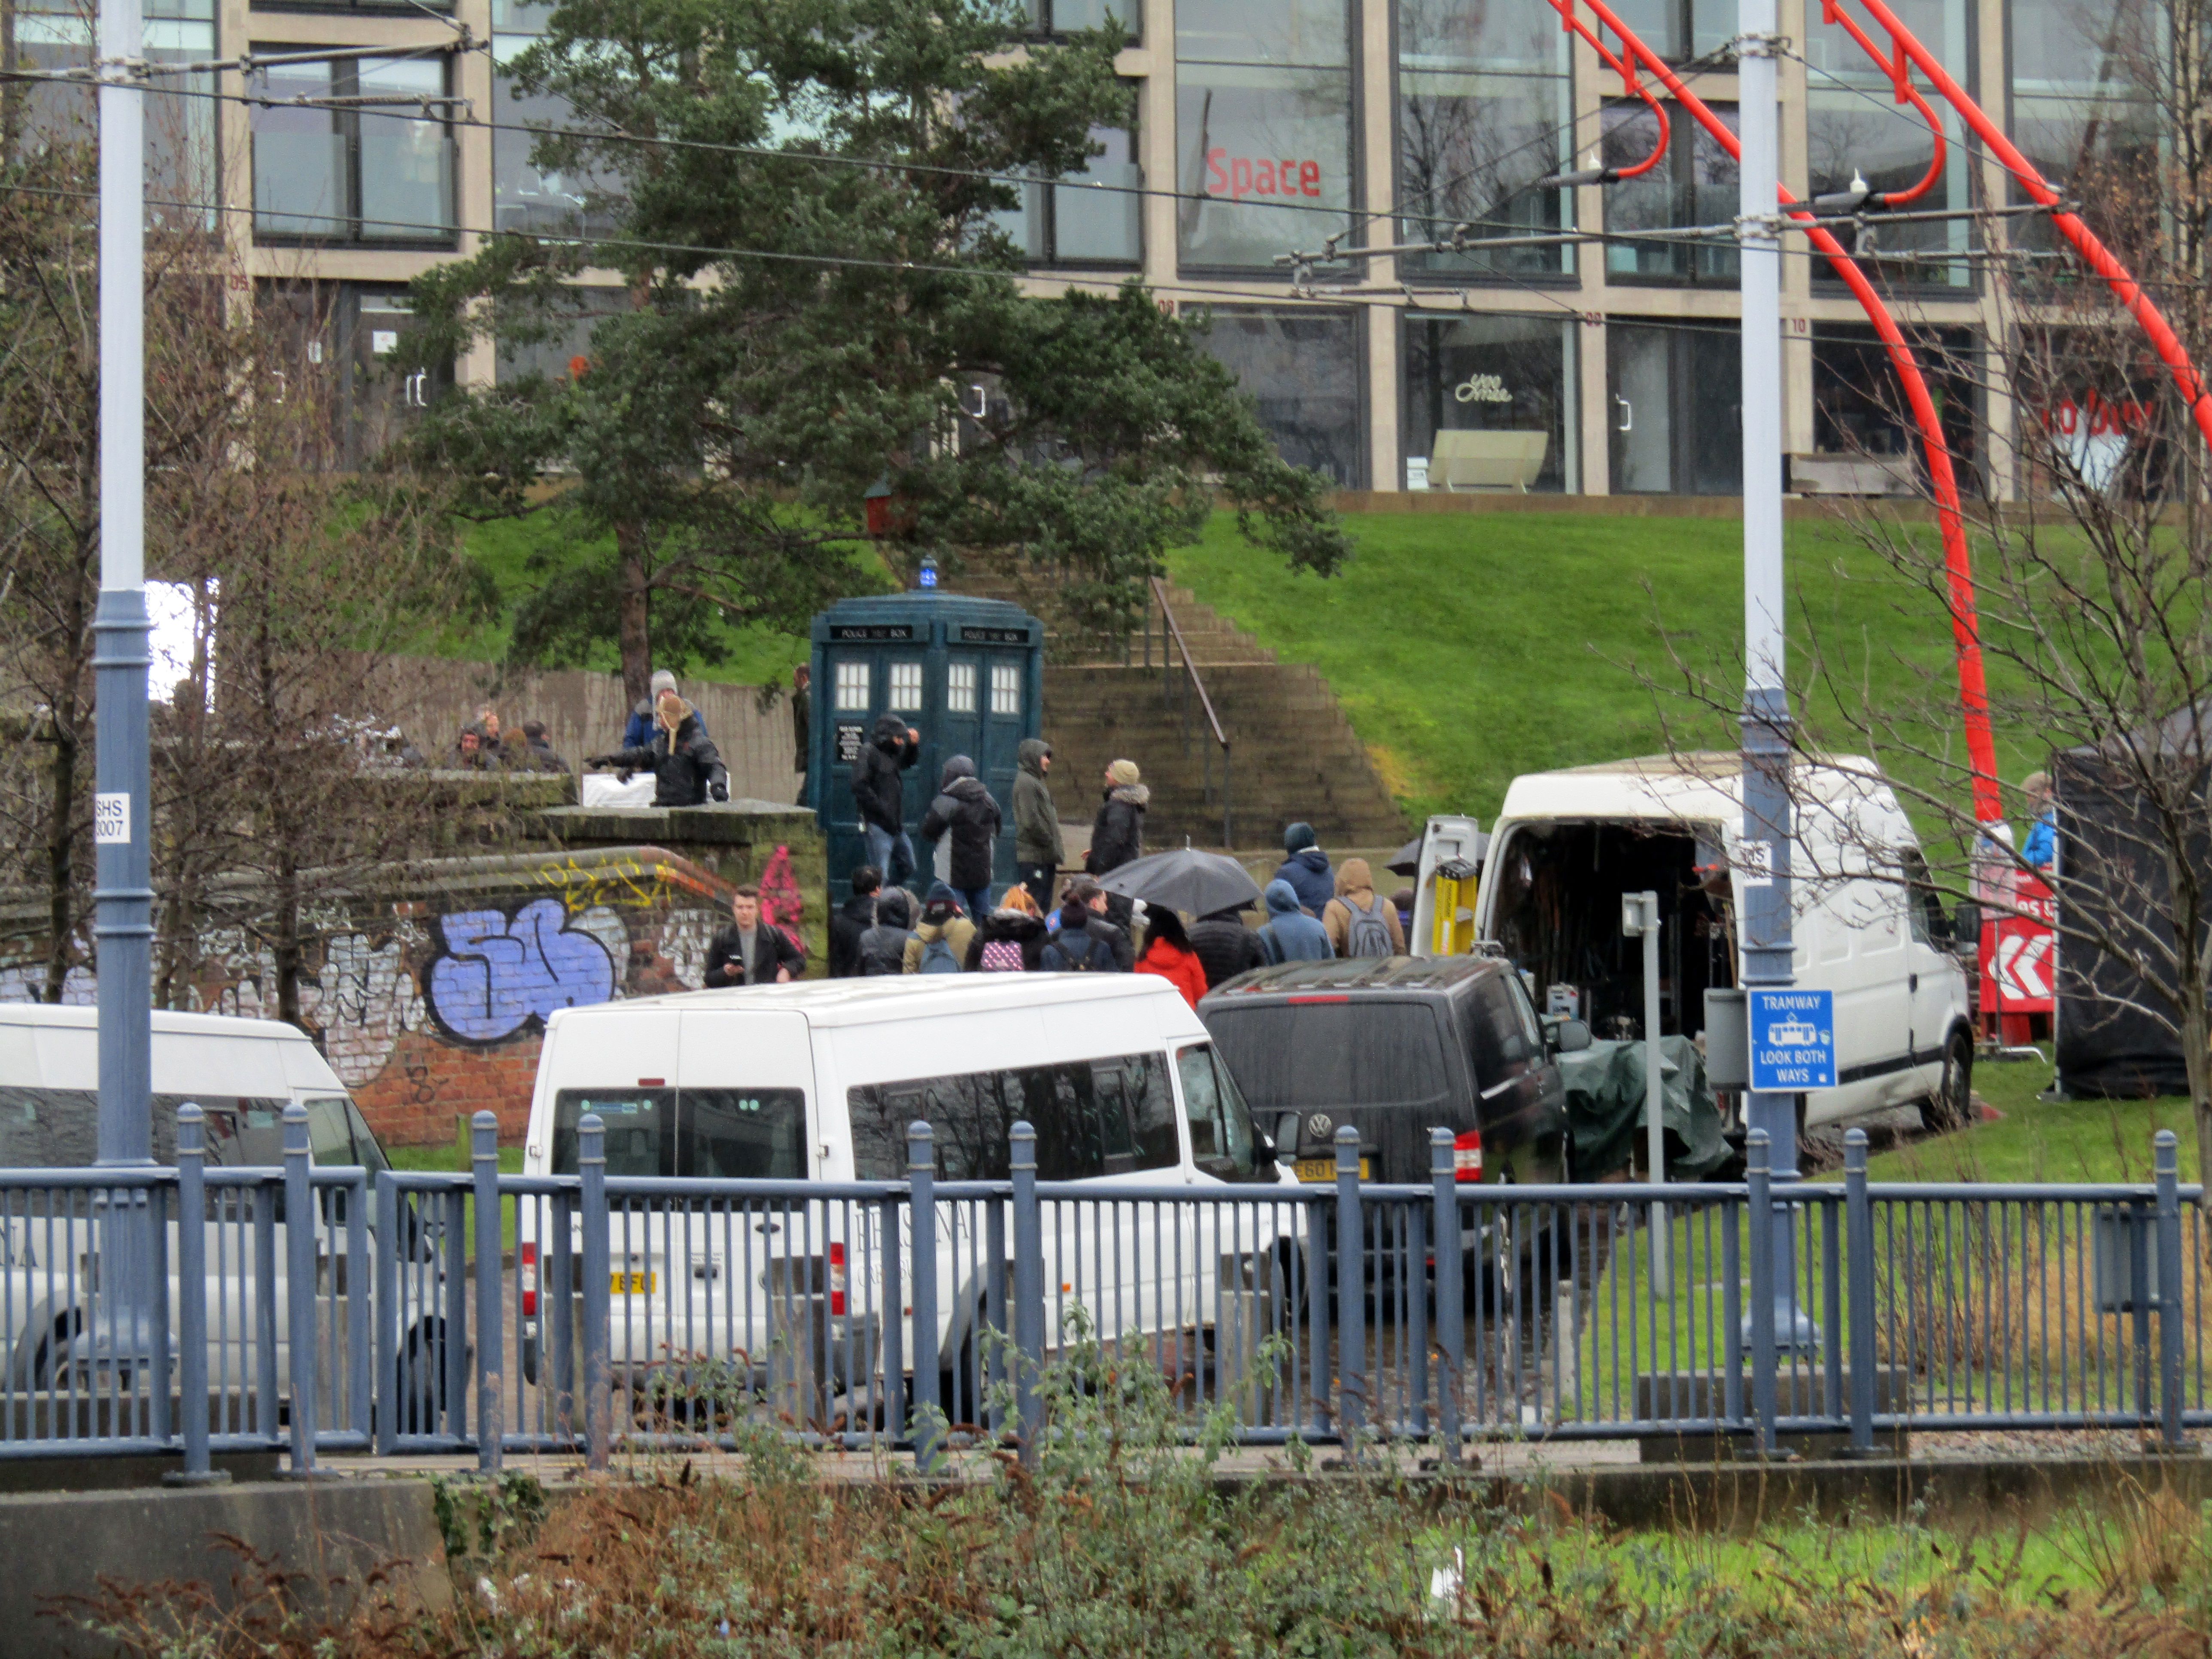 doctor-who-filming-sheffield-2018_38436194440_o